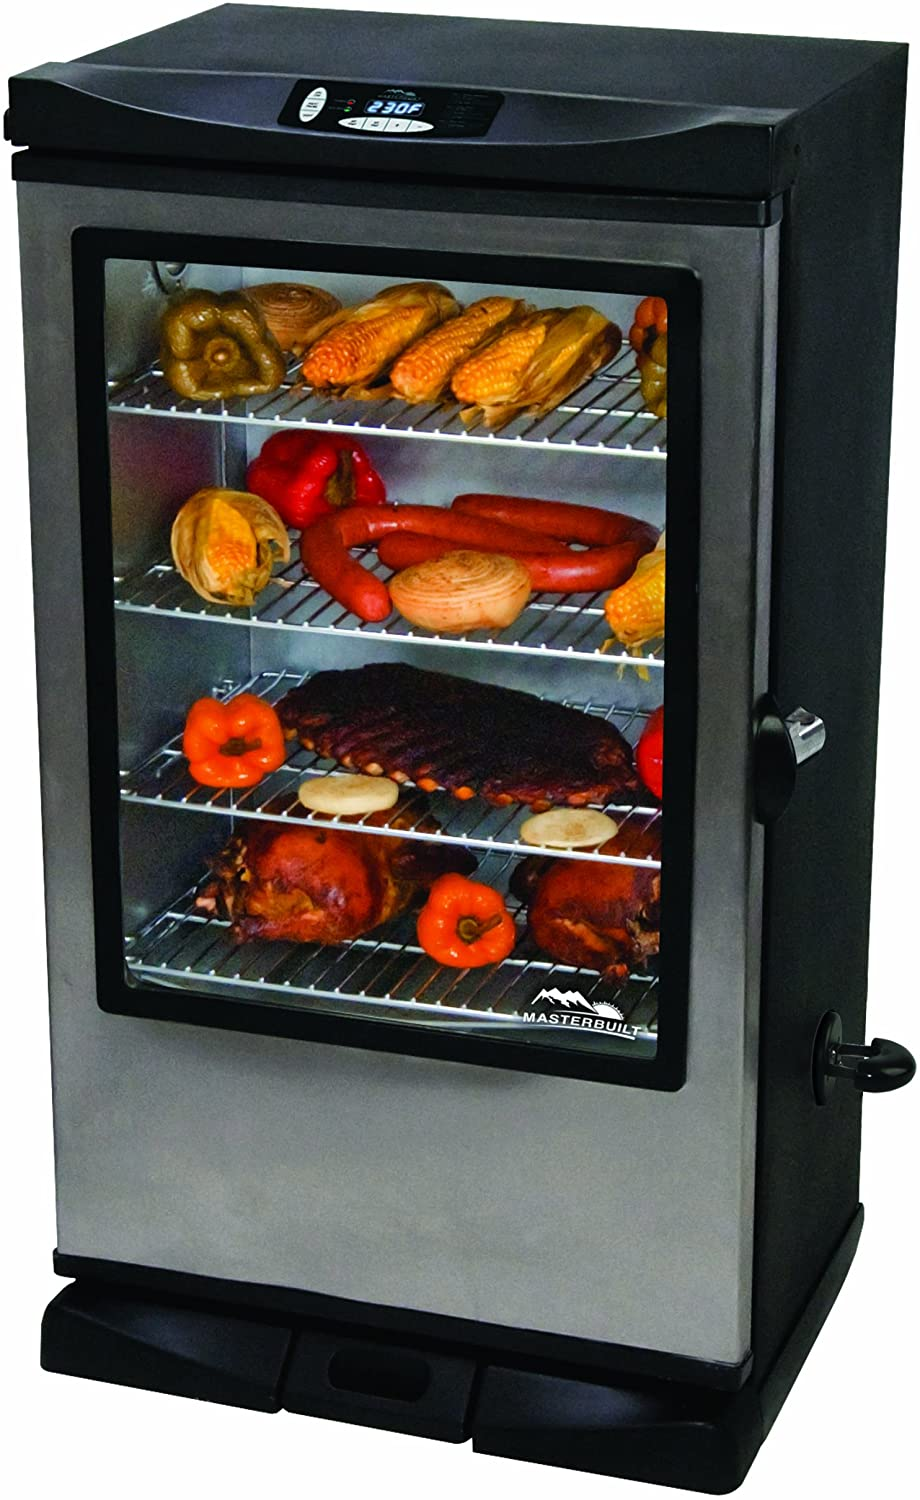 Masterbuilt 20070312 30-Inch Front Controller Electric Smoker Review